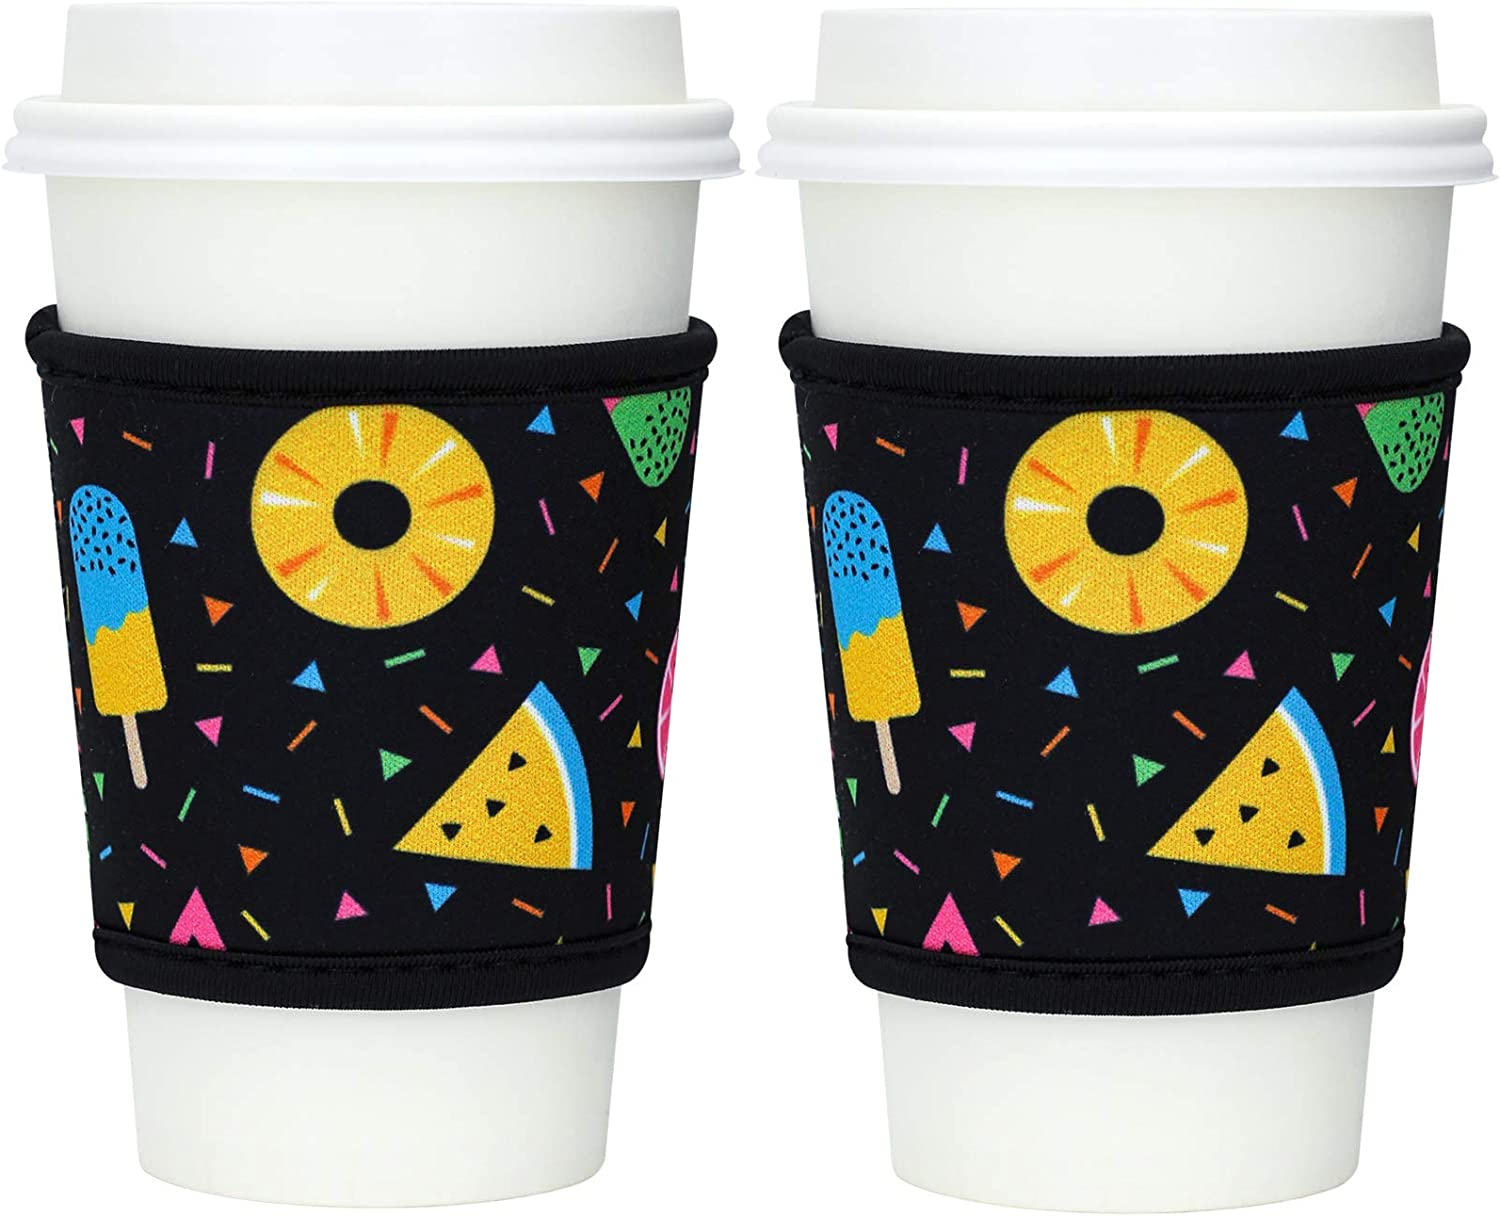 Hzran Reusable Iced Coffee Cup Sleeve, Insulator Java Sleeve for Cold Beverages and Hot Coffee, 12-24oz Neoprene Holder for Starbucks Coffee, McDonald's, Dunkin Donuts-Set of 2(Donuts)